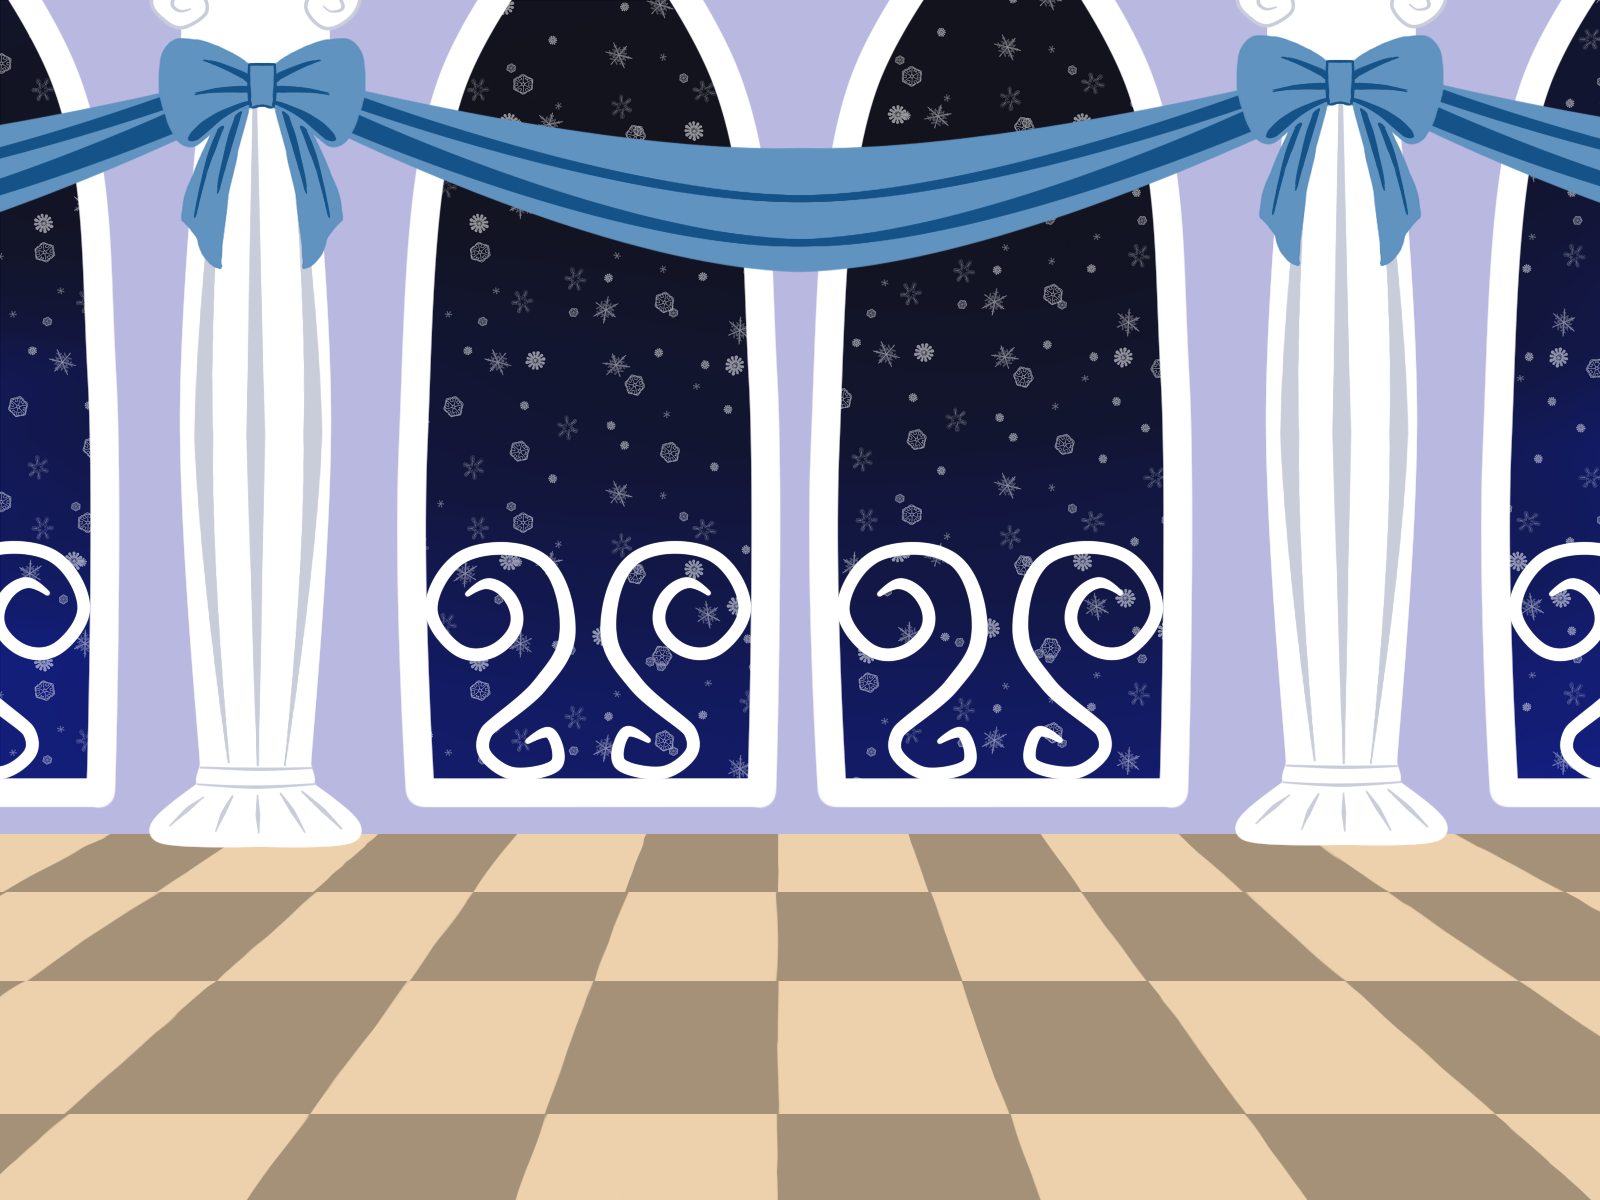 Tumblr winterprom 2013 background by taritoons on deviantart for 1234 get on the dance floor video download